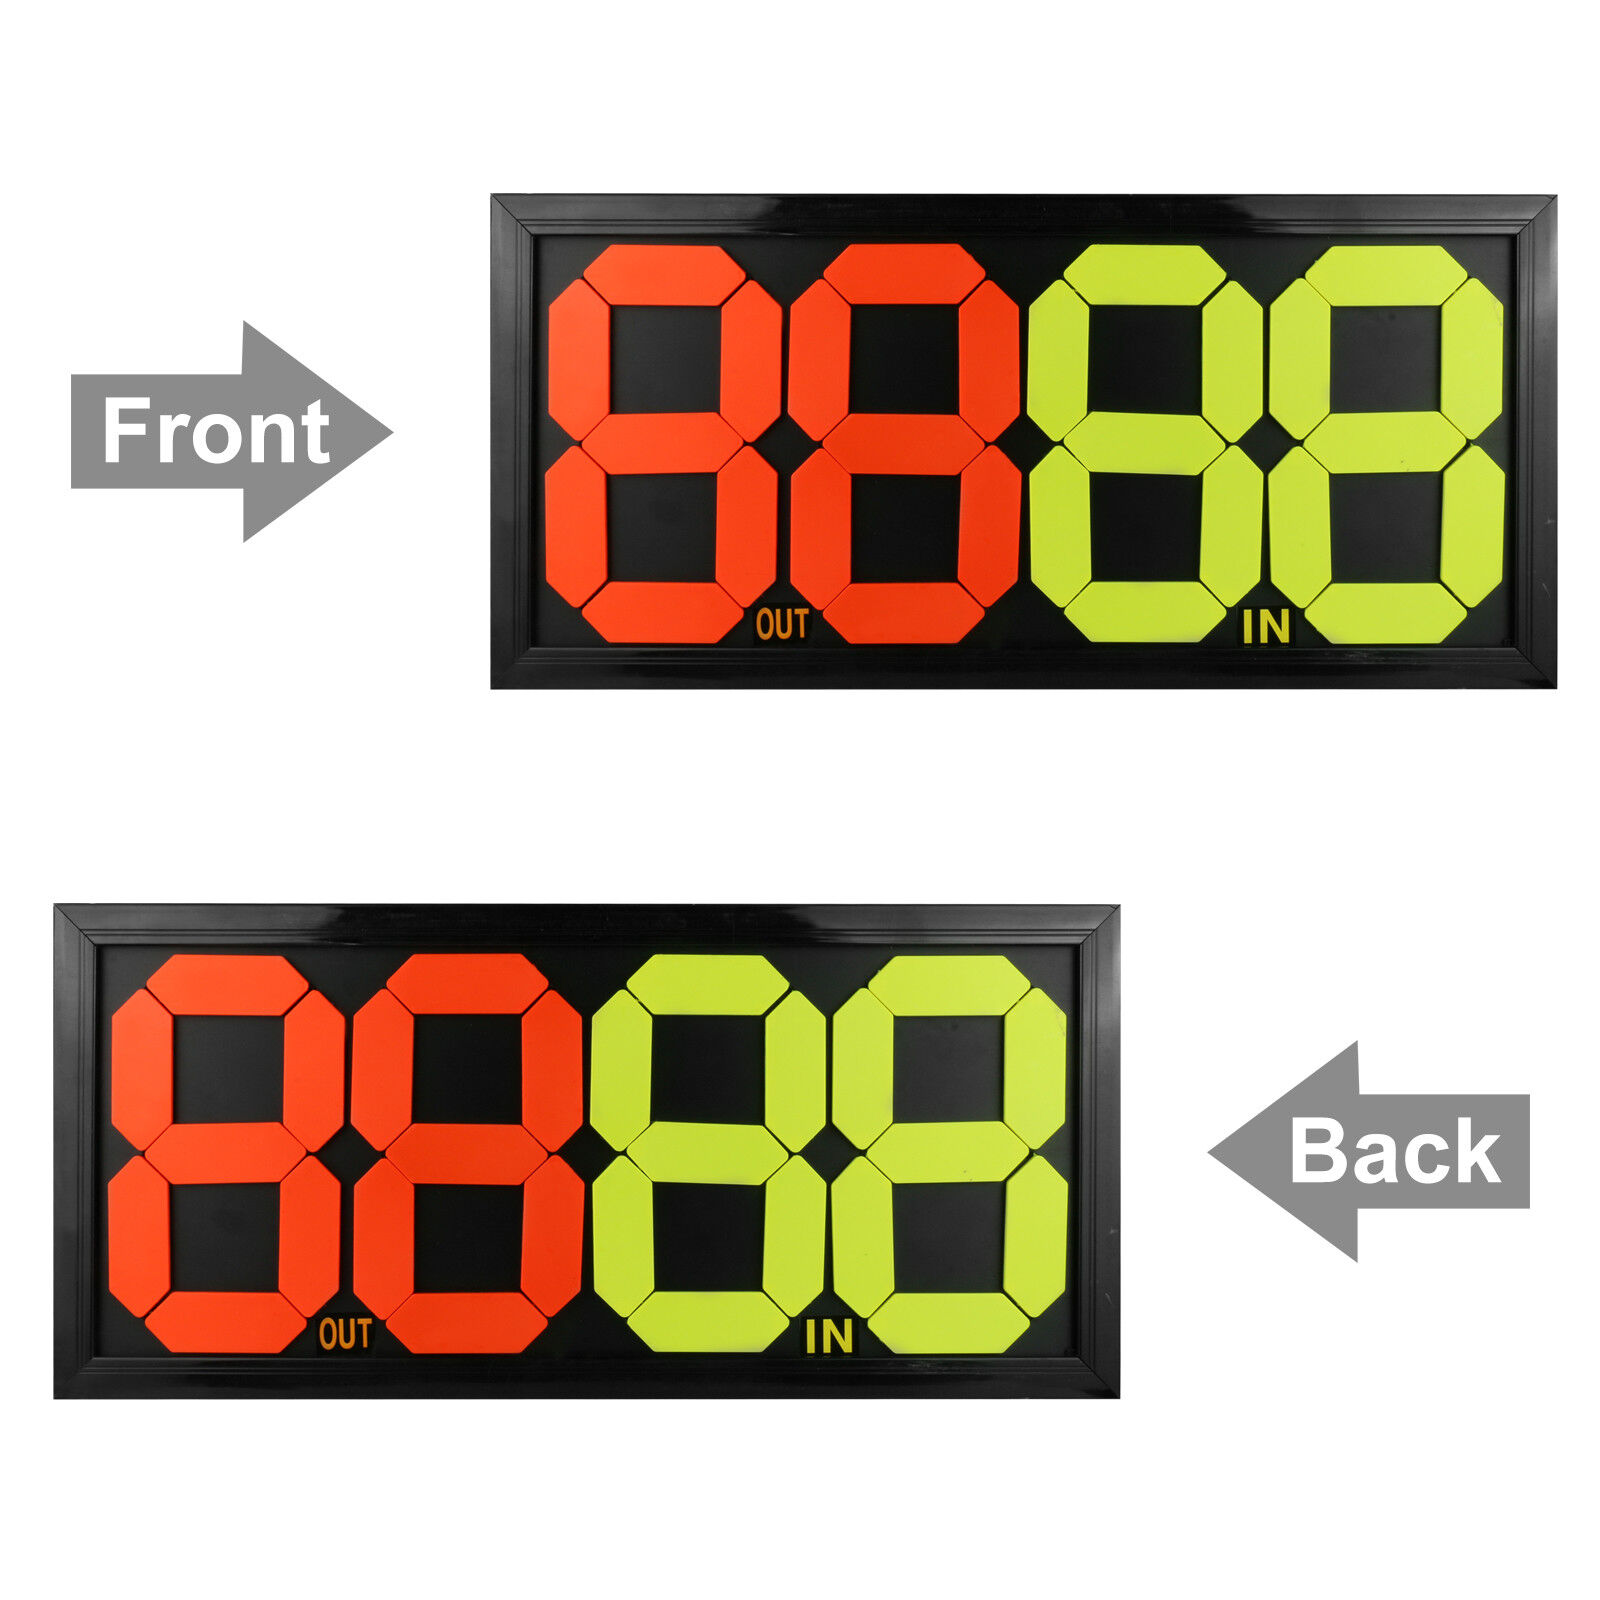 c6645f4ebf5 4-Digits Double Side Football   Soccer Athlete Substitution Board Display  Out In